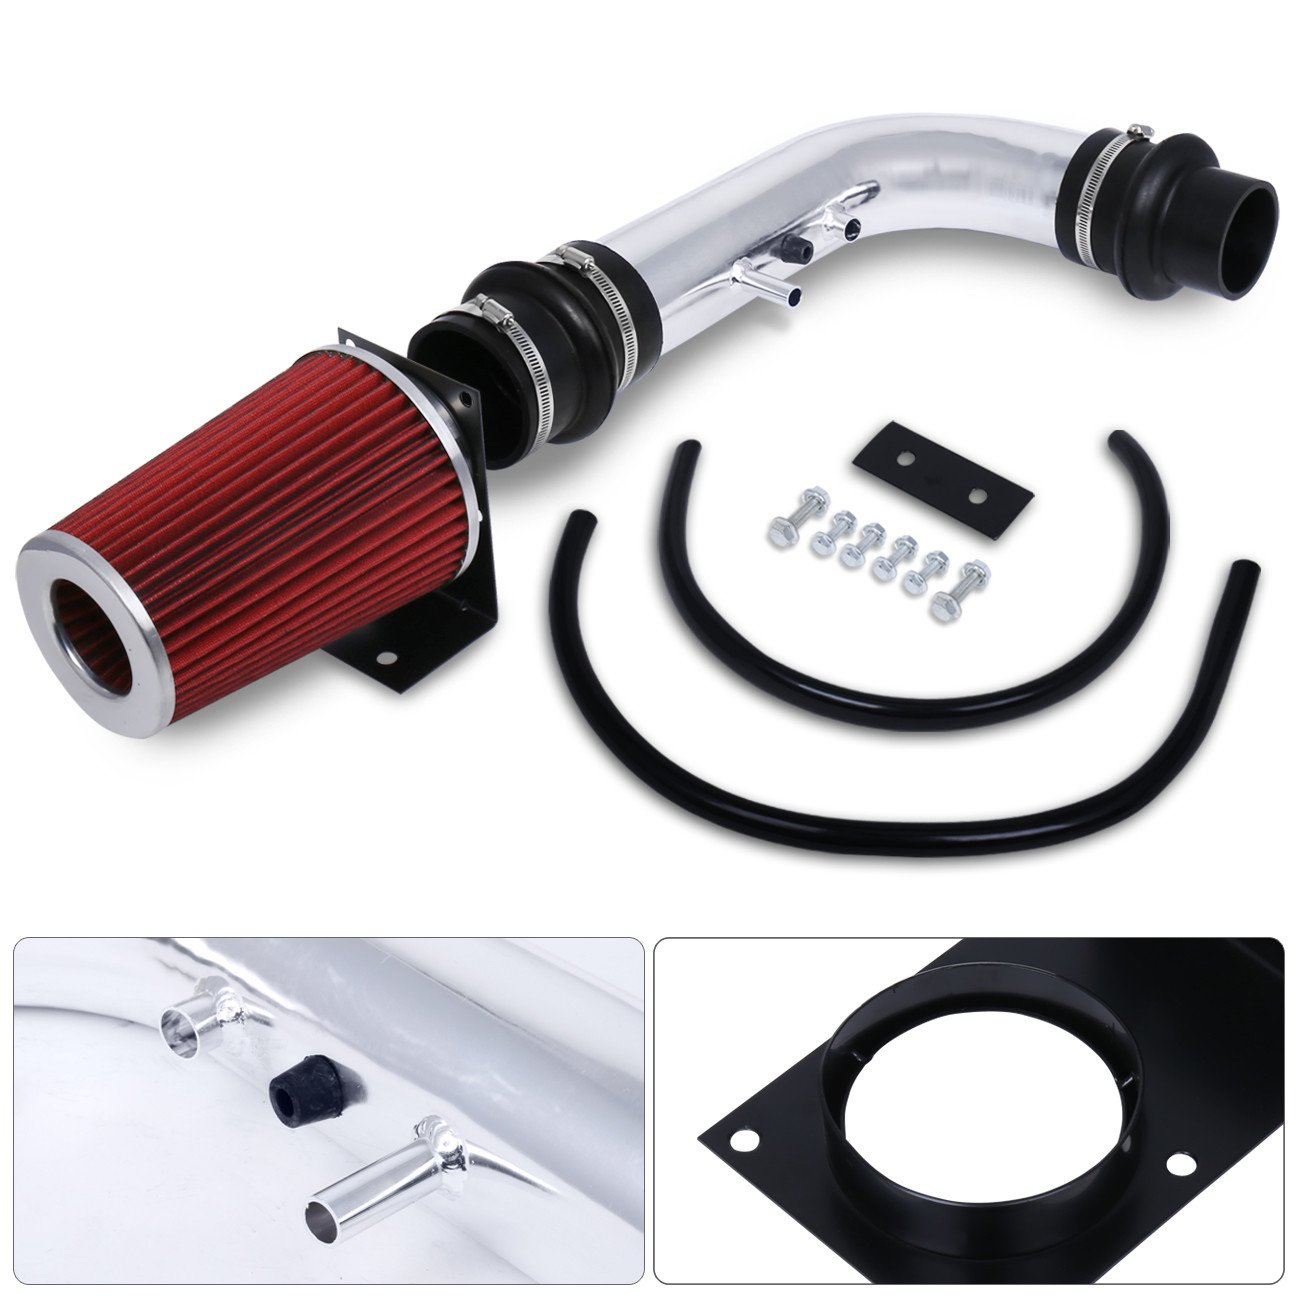 Ajp Distributors 3.5' Chrome Short Ram Air Intake Induction Kit For Ford F-150 F150/Expedition 4.6L/5.4L V8 W/Red Dry Air Filter